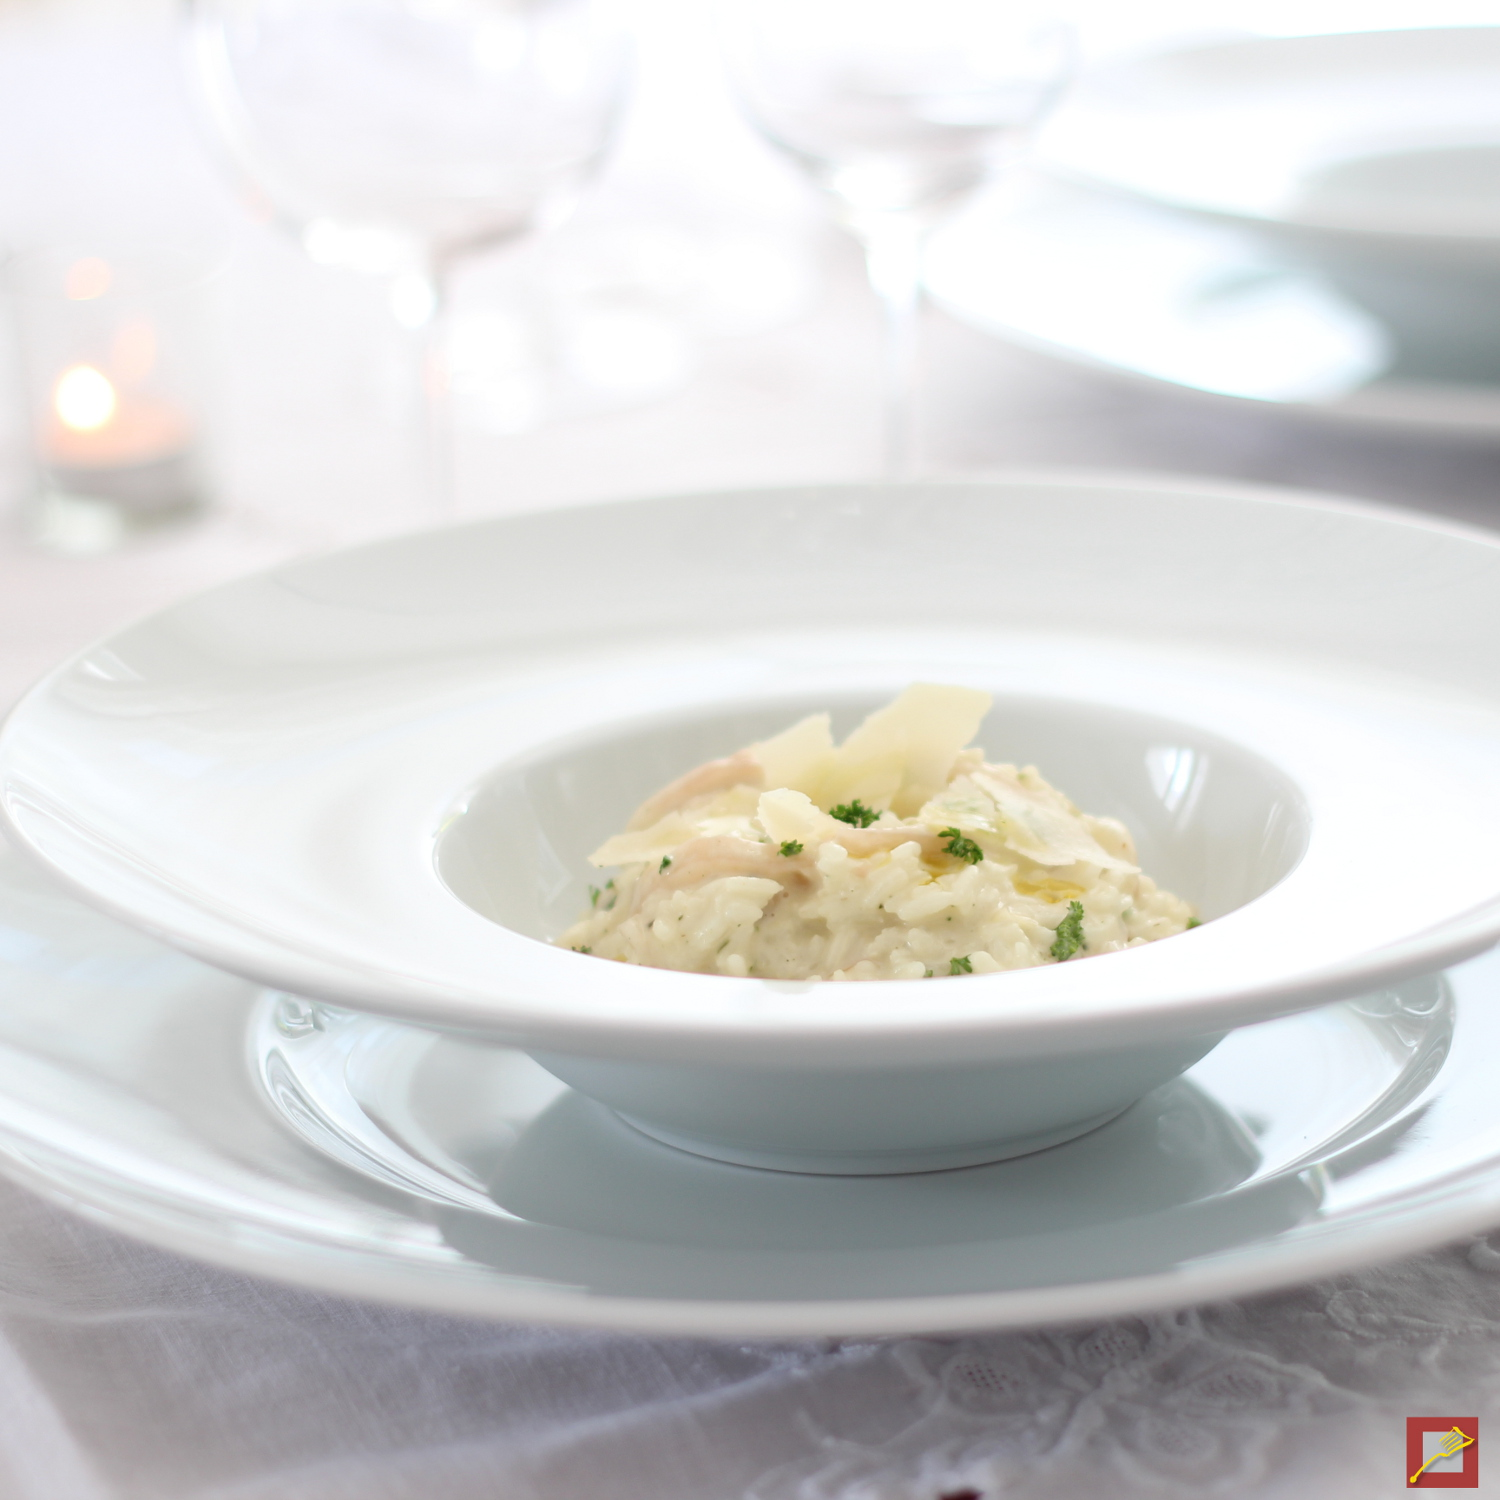 Happy Valentine's Day – Risotto variations to share with someone in love